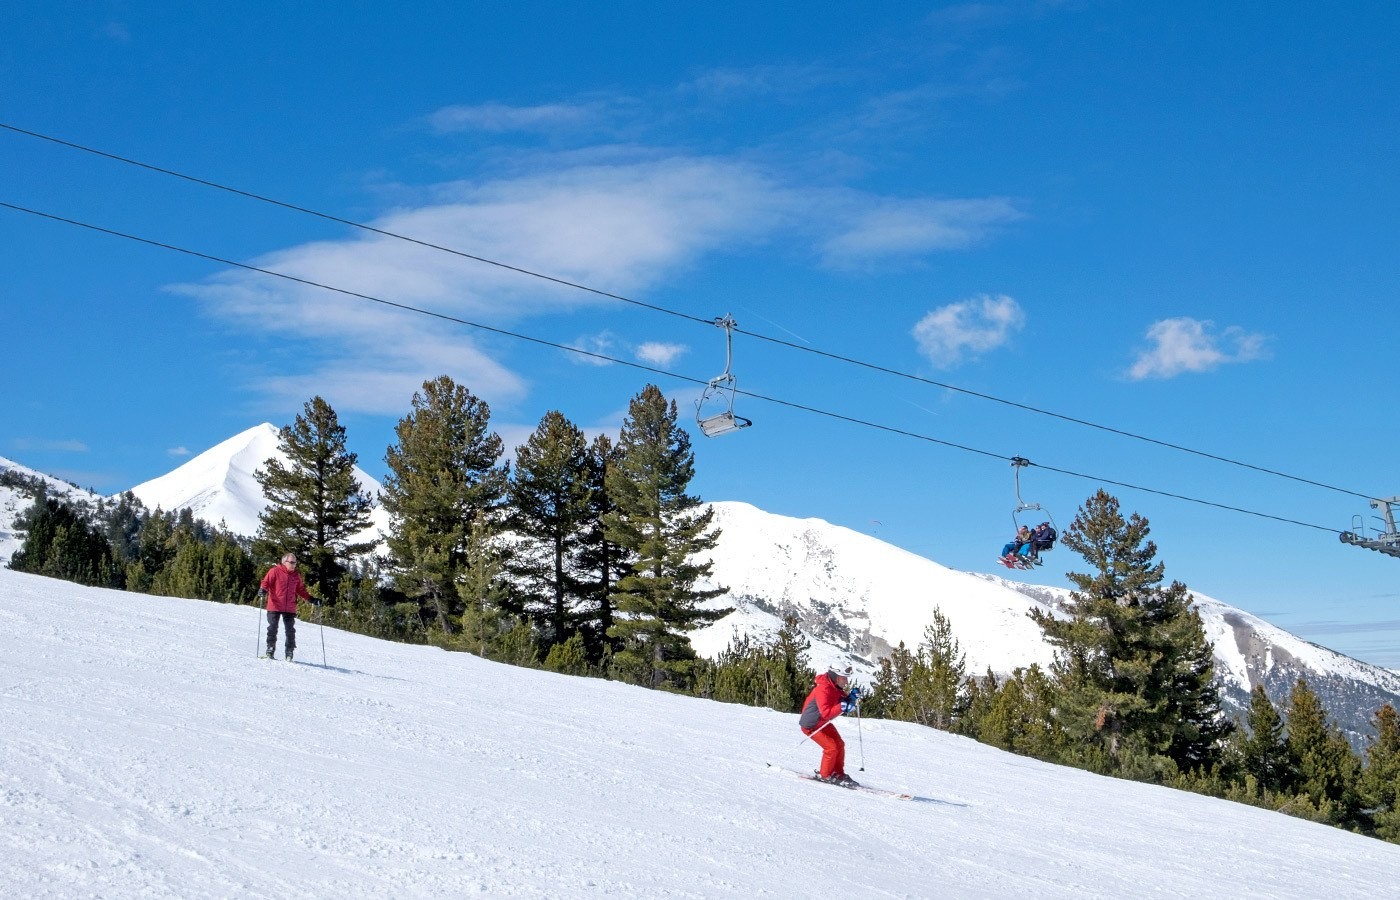 Beginners on the slopes on a Bulgaria ski holiday